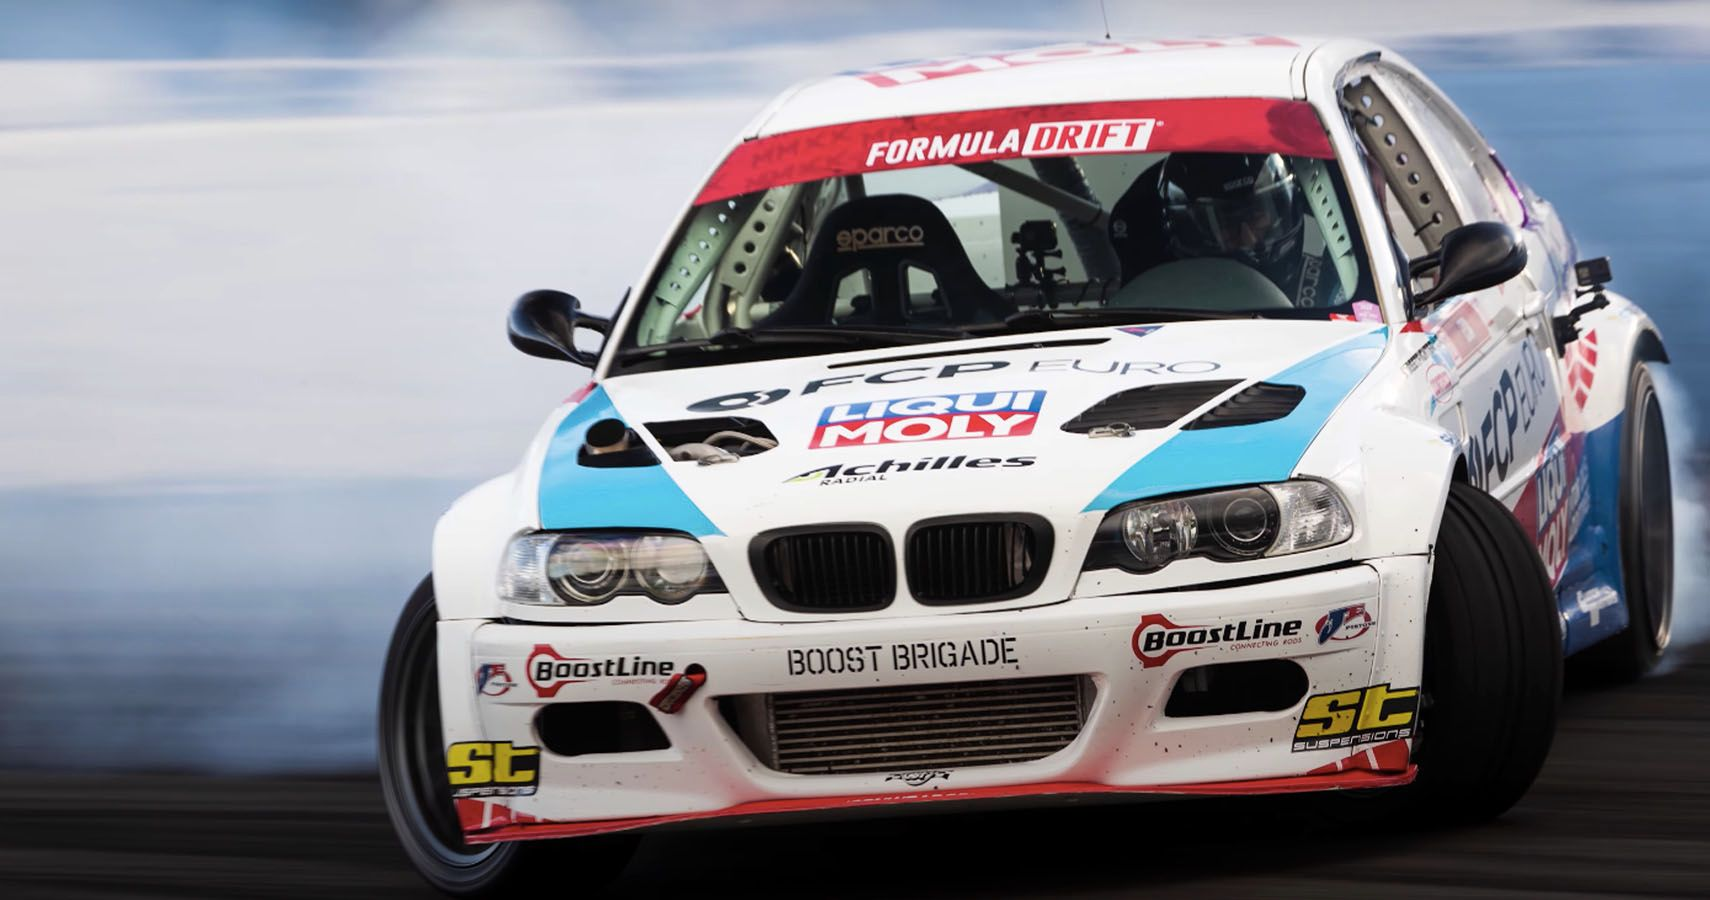 Formula Drifter Turned His Mom S E46 Bmw Into This 1015 Hp S54 Powered Build